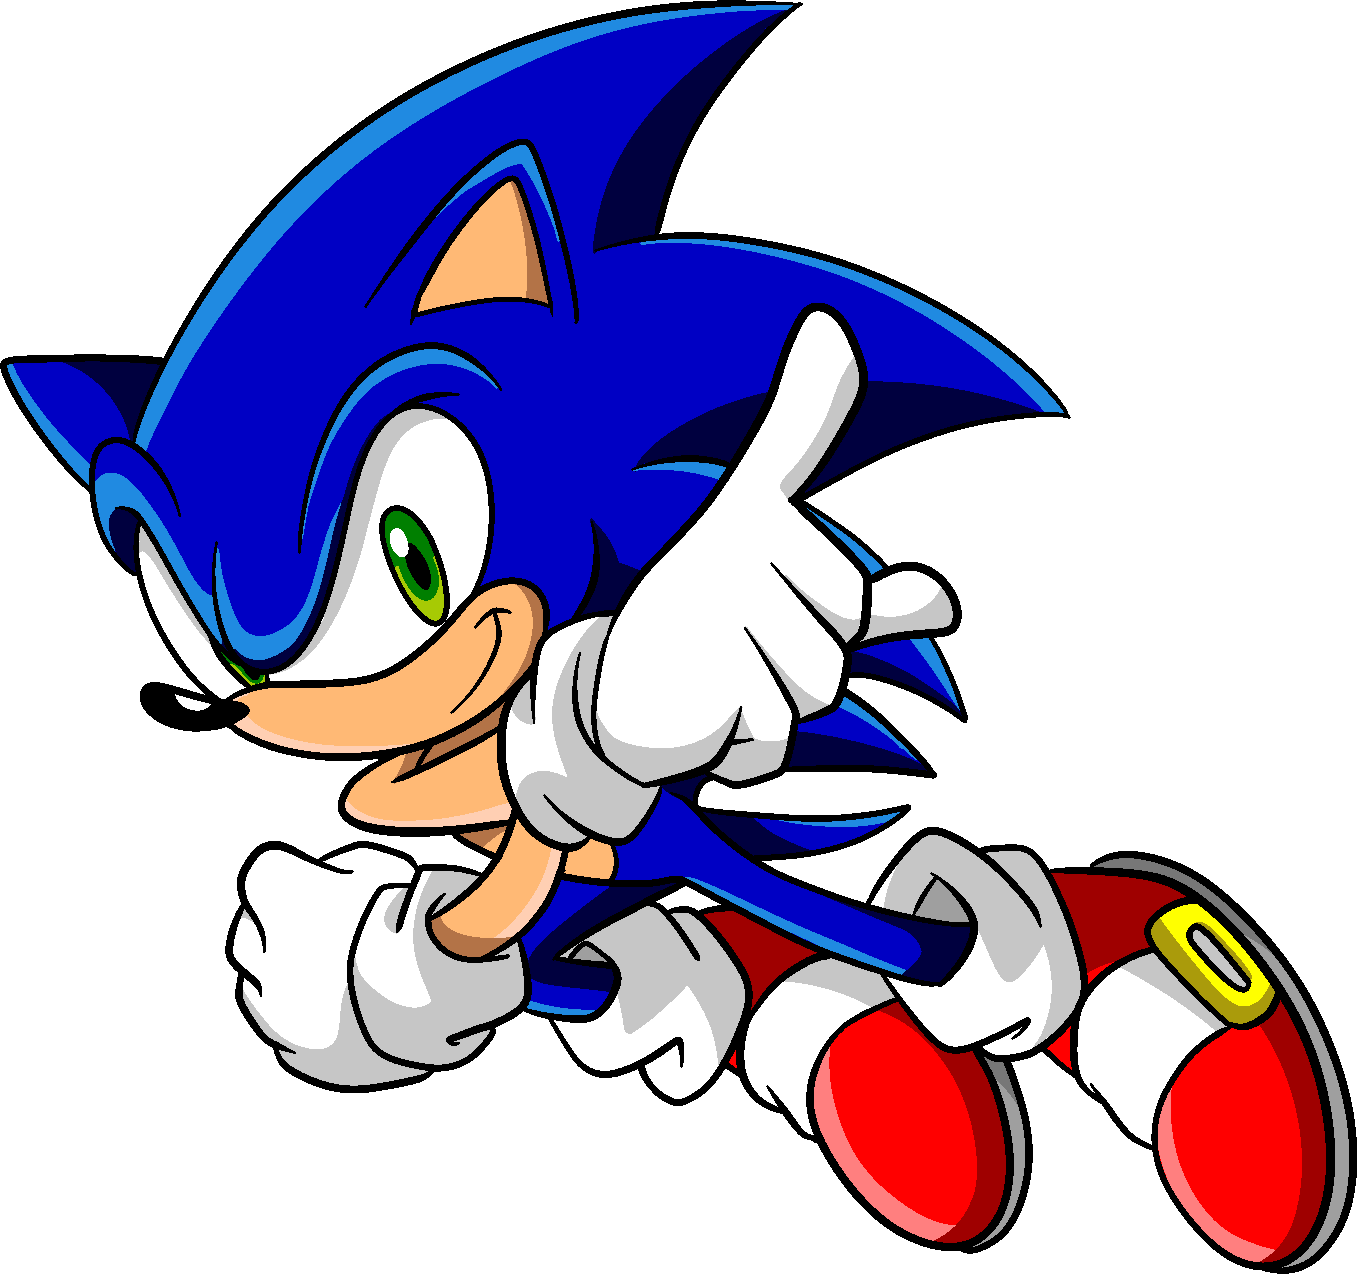 SONICX_CSS.png